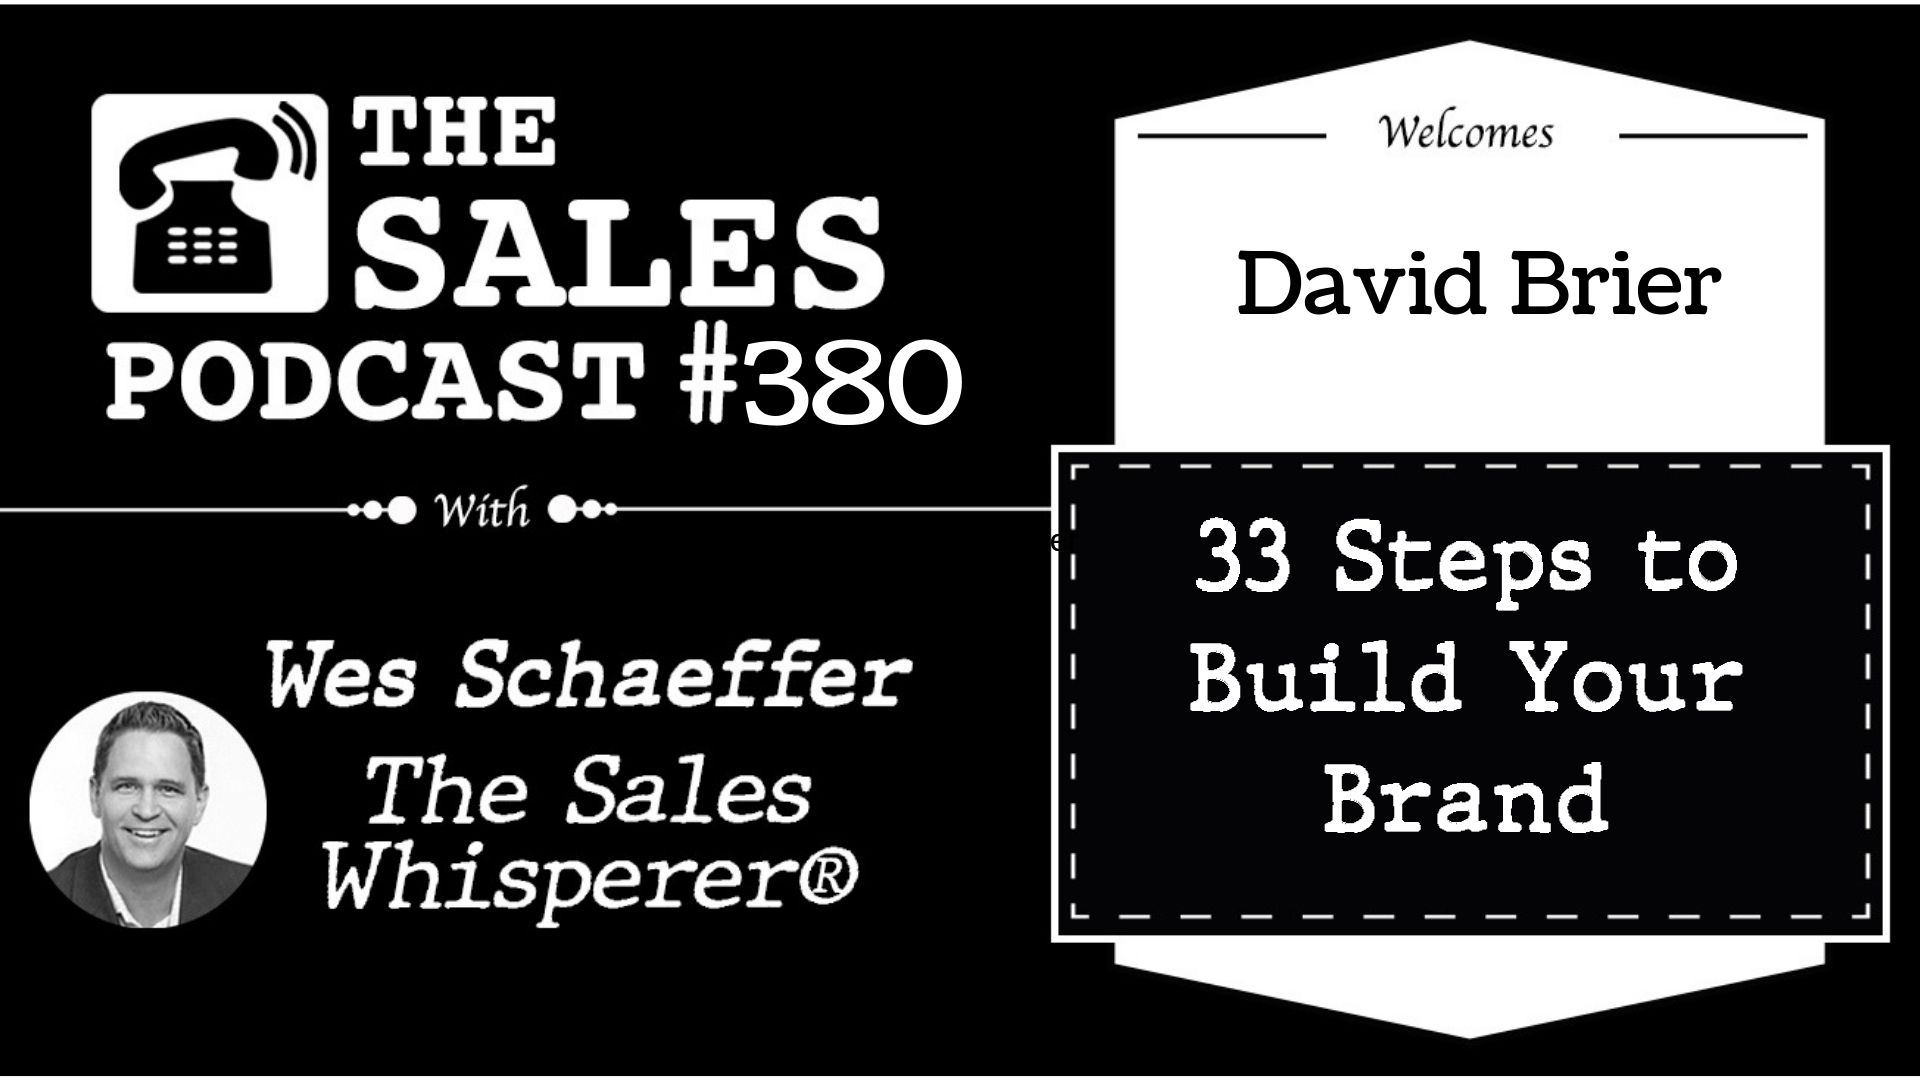 David Brier discusses brand intervention on The Sales Podcast with Wes Schaeffer.